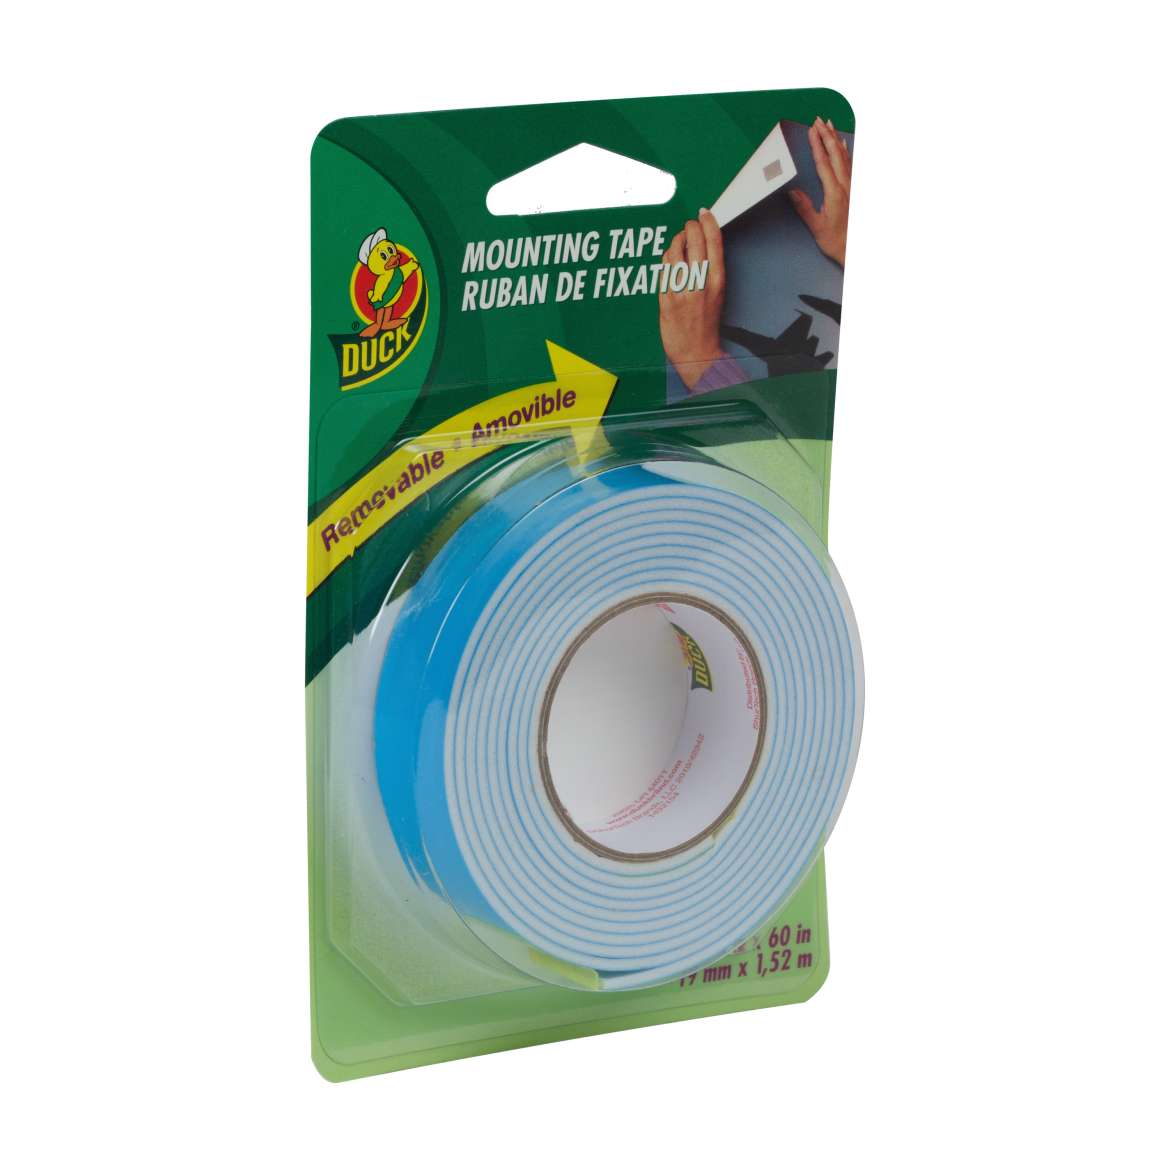 Duck® Brand Removable Mounting Tape - White, .75 in. x 60 in. Image